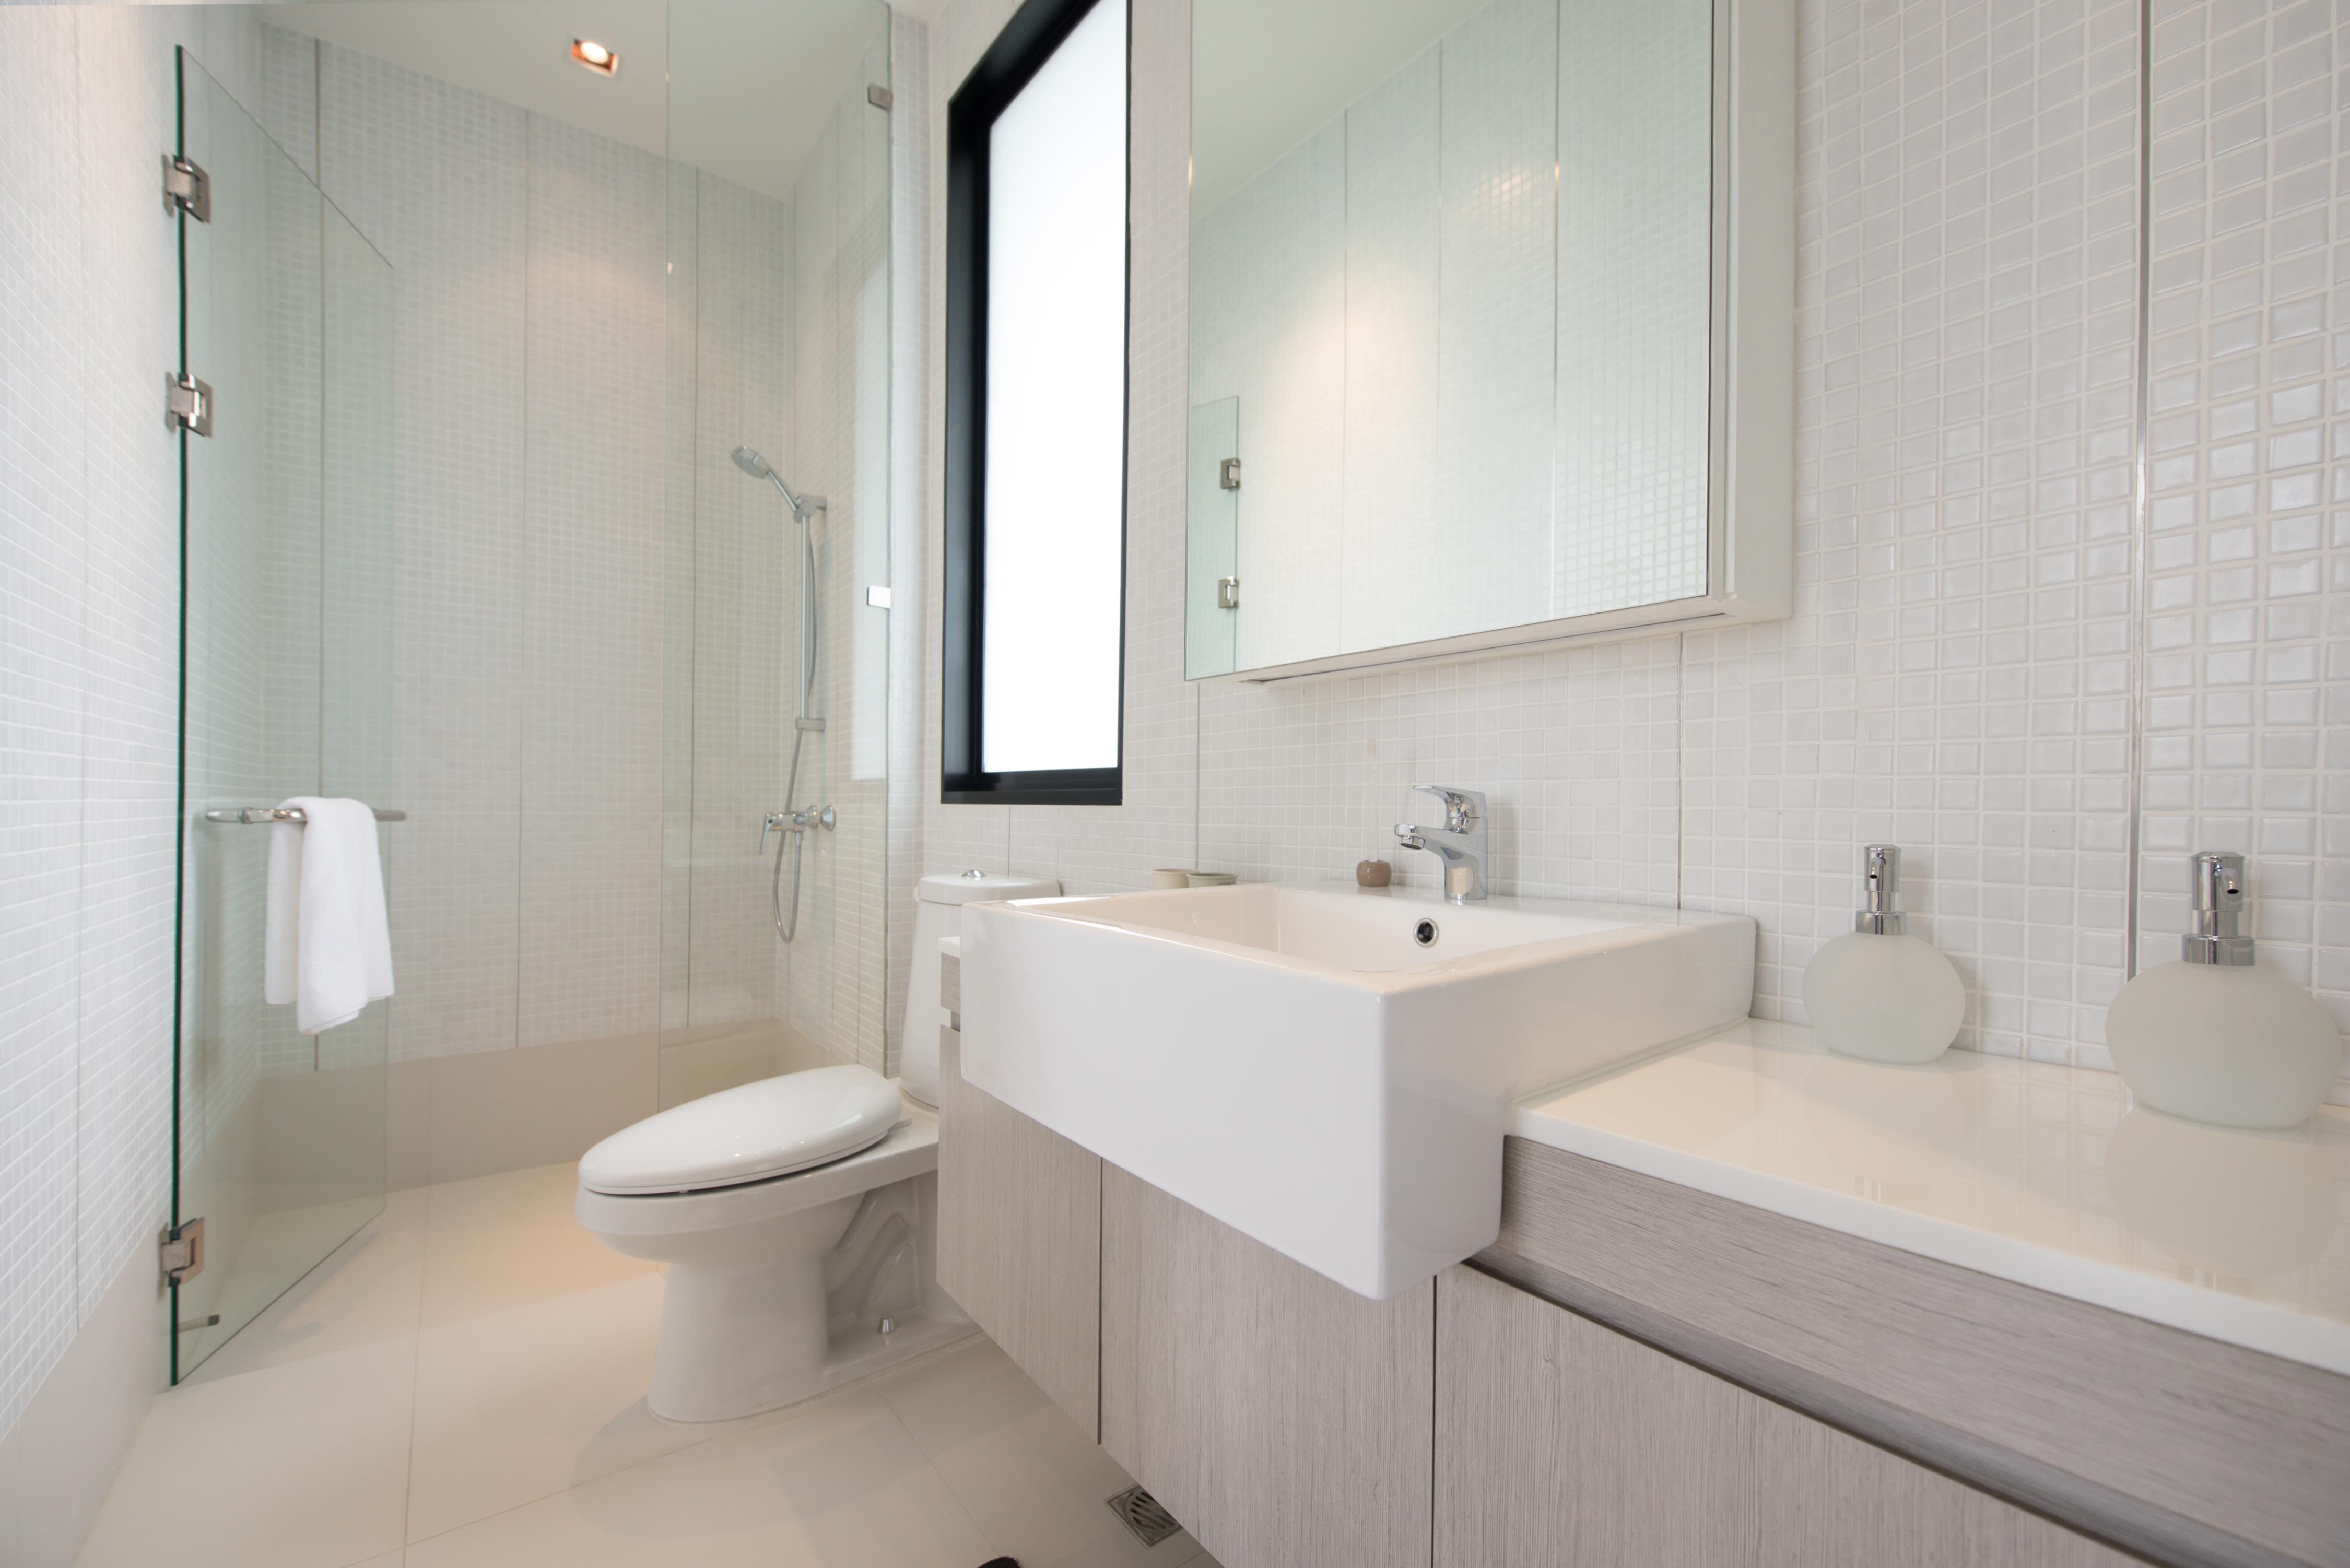 How To Make The Most Out Of A Small Bathroom Quality